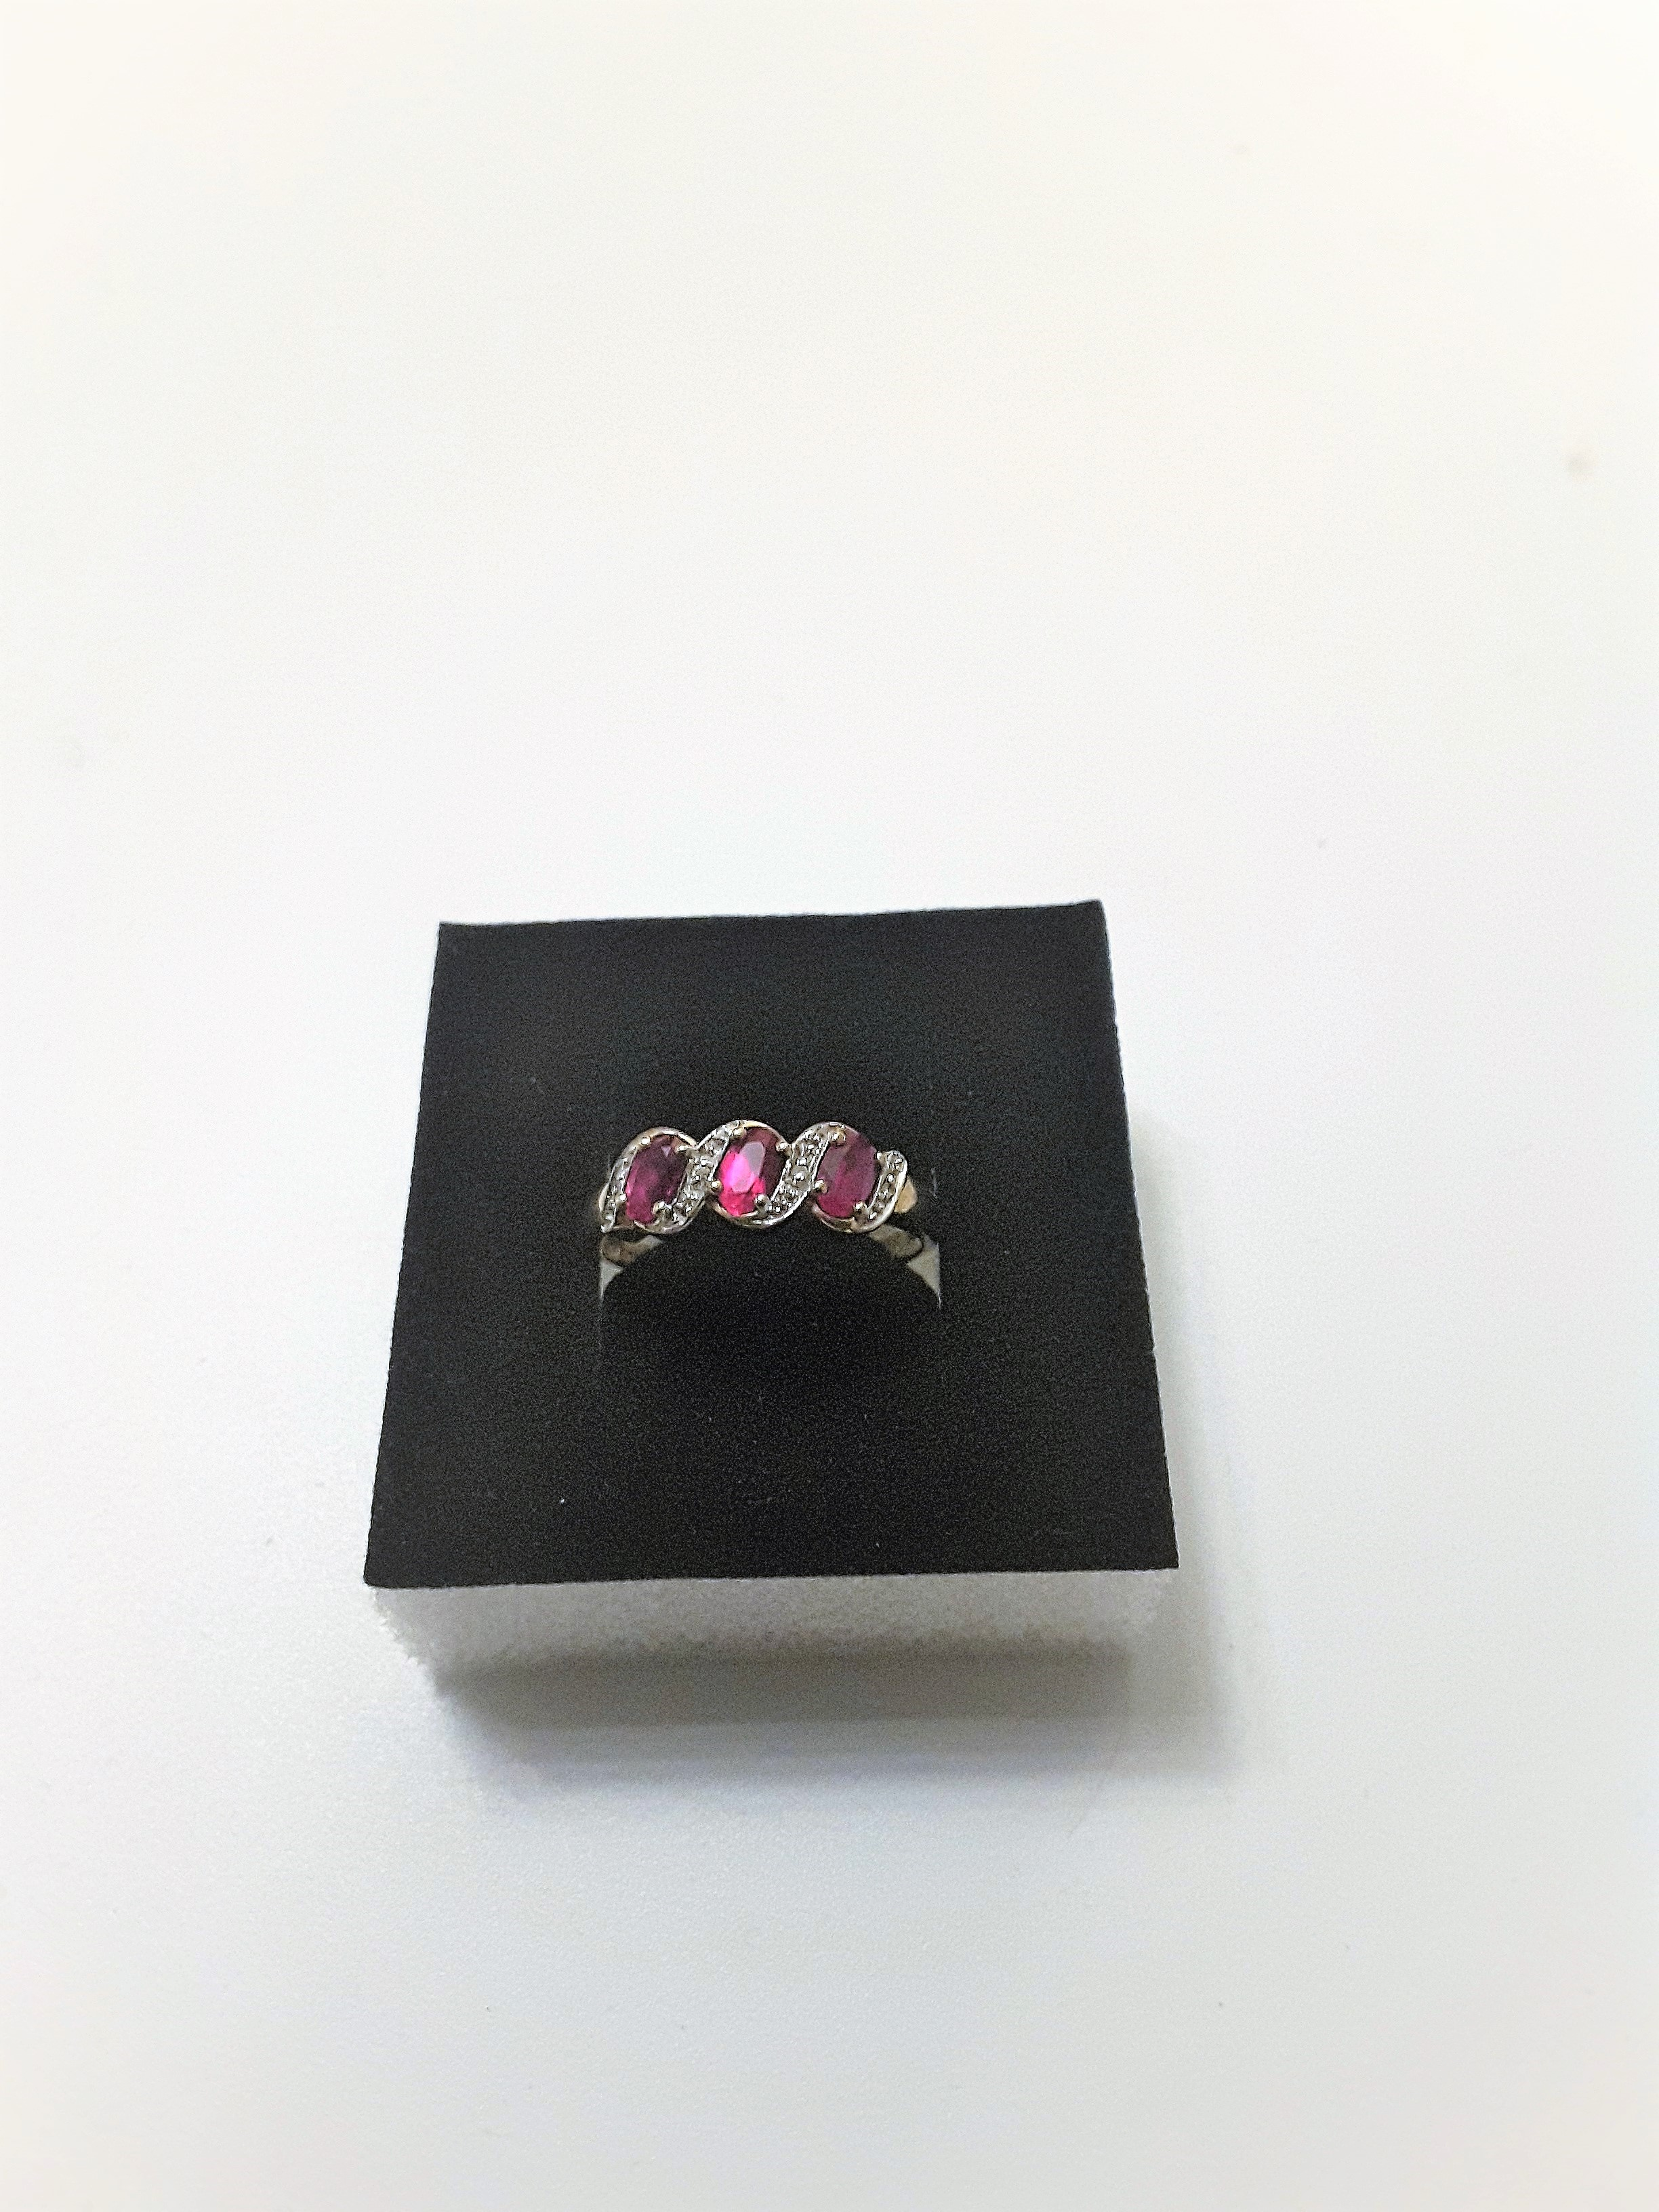 9Ct Gold Ruby And Diamond 3 Stone Ring - Image 3 of 5